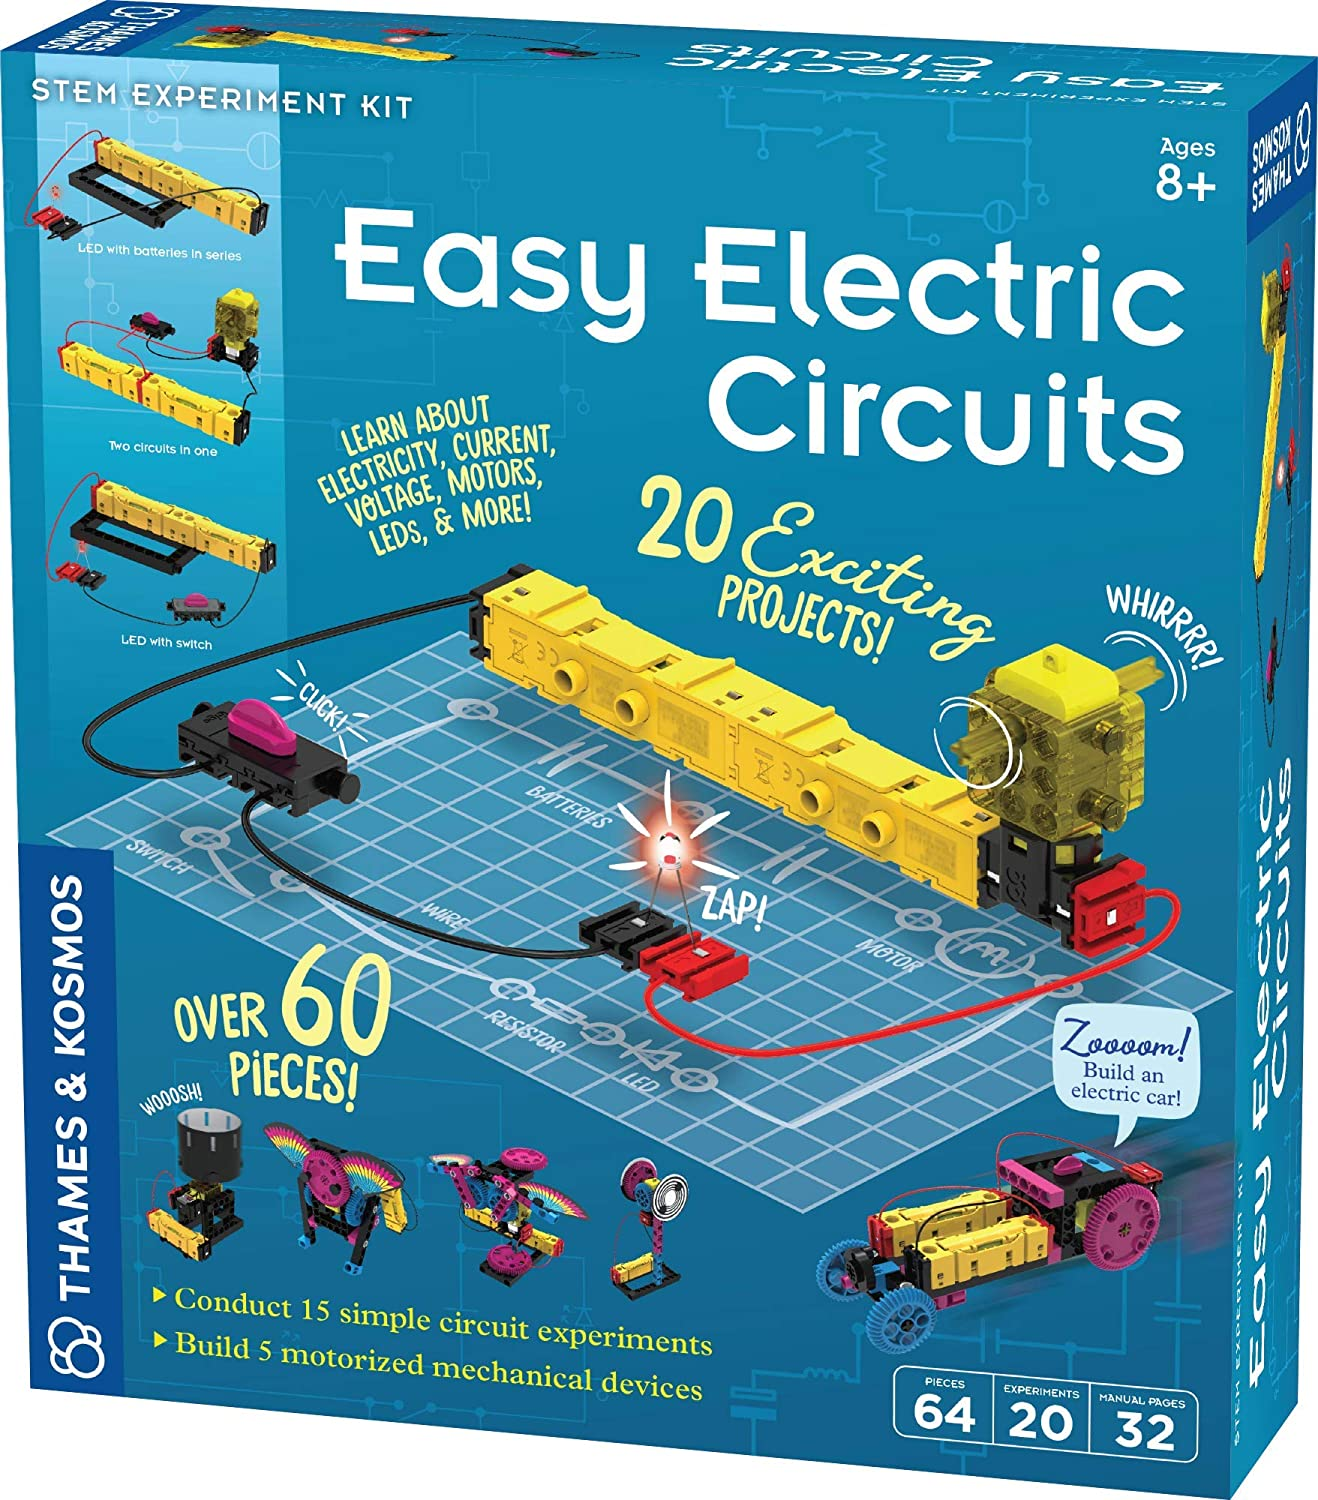 Innovative Voltage 5 Motorized Models Electricity Thames /& Kosmos Easy Electric Circuits STEM Kit Easy-to-Use Building System LEDs /& More Essential Circuitry Set 15 Experiments Current